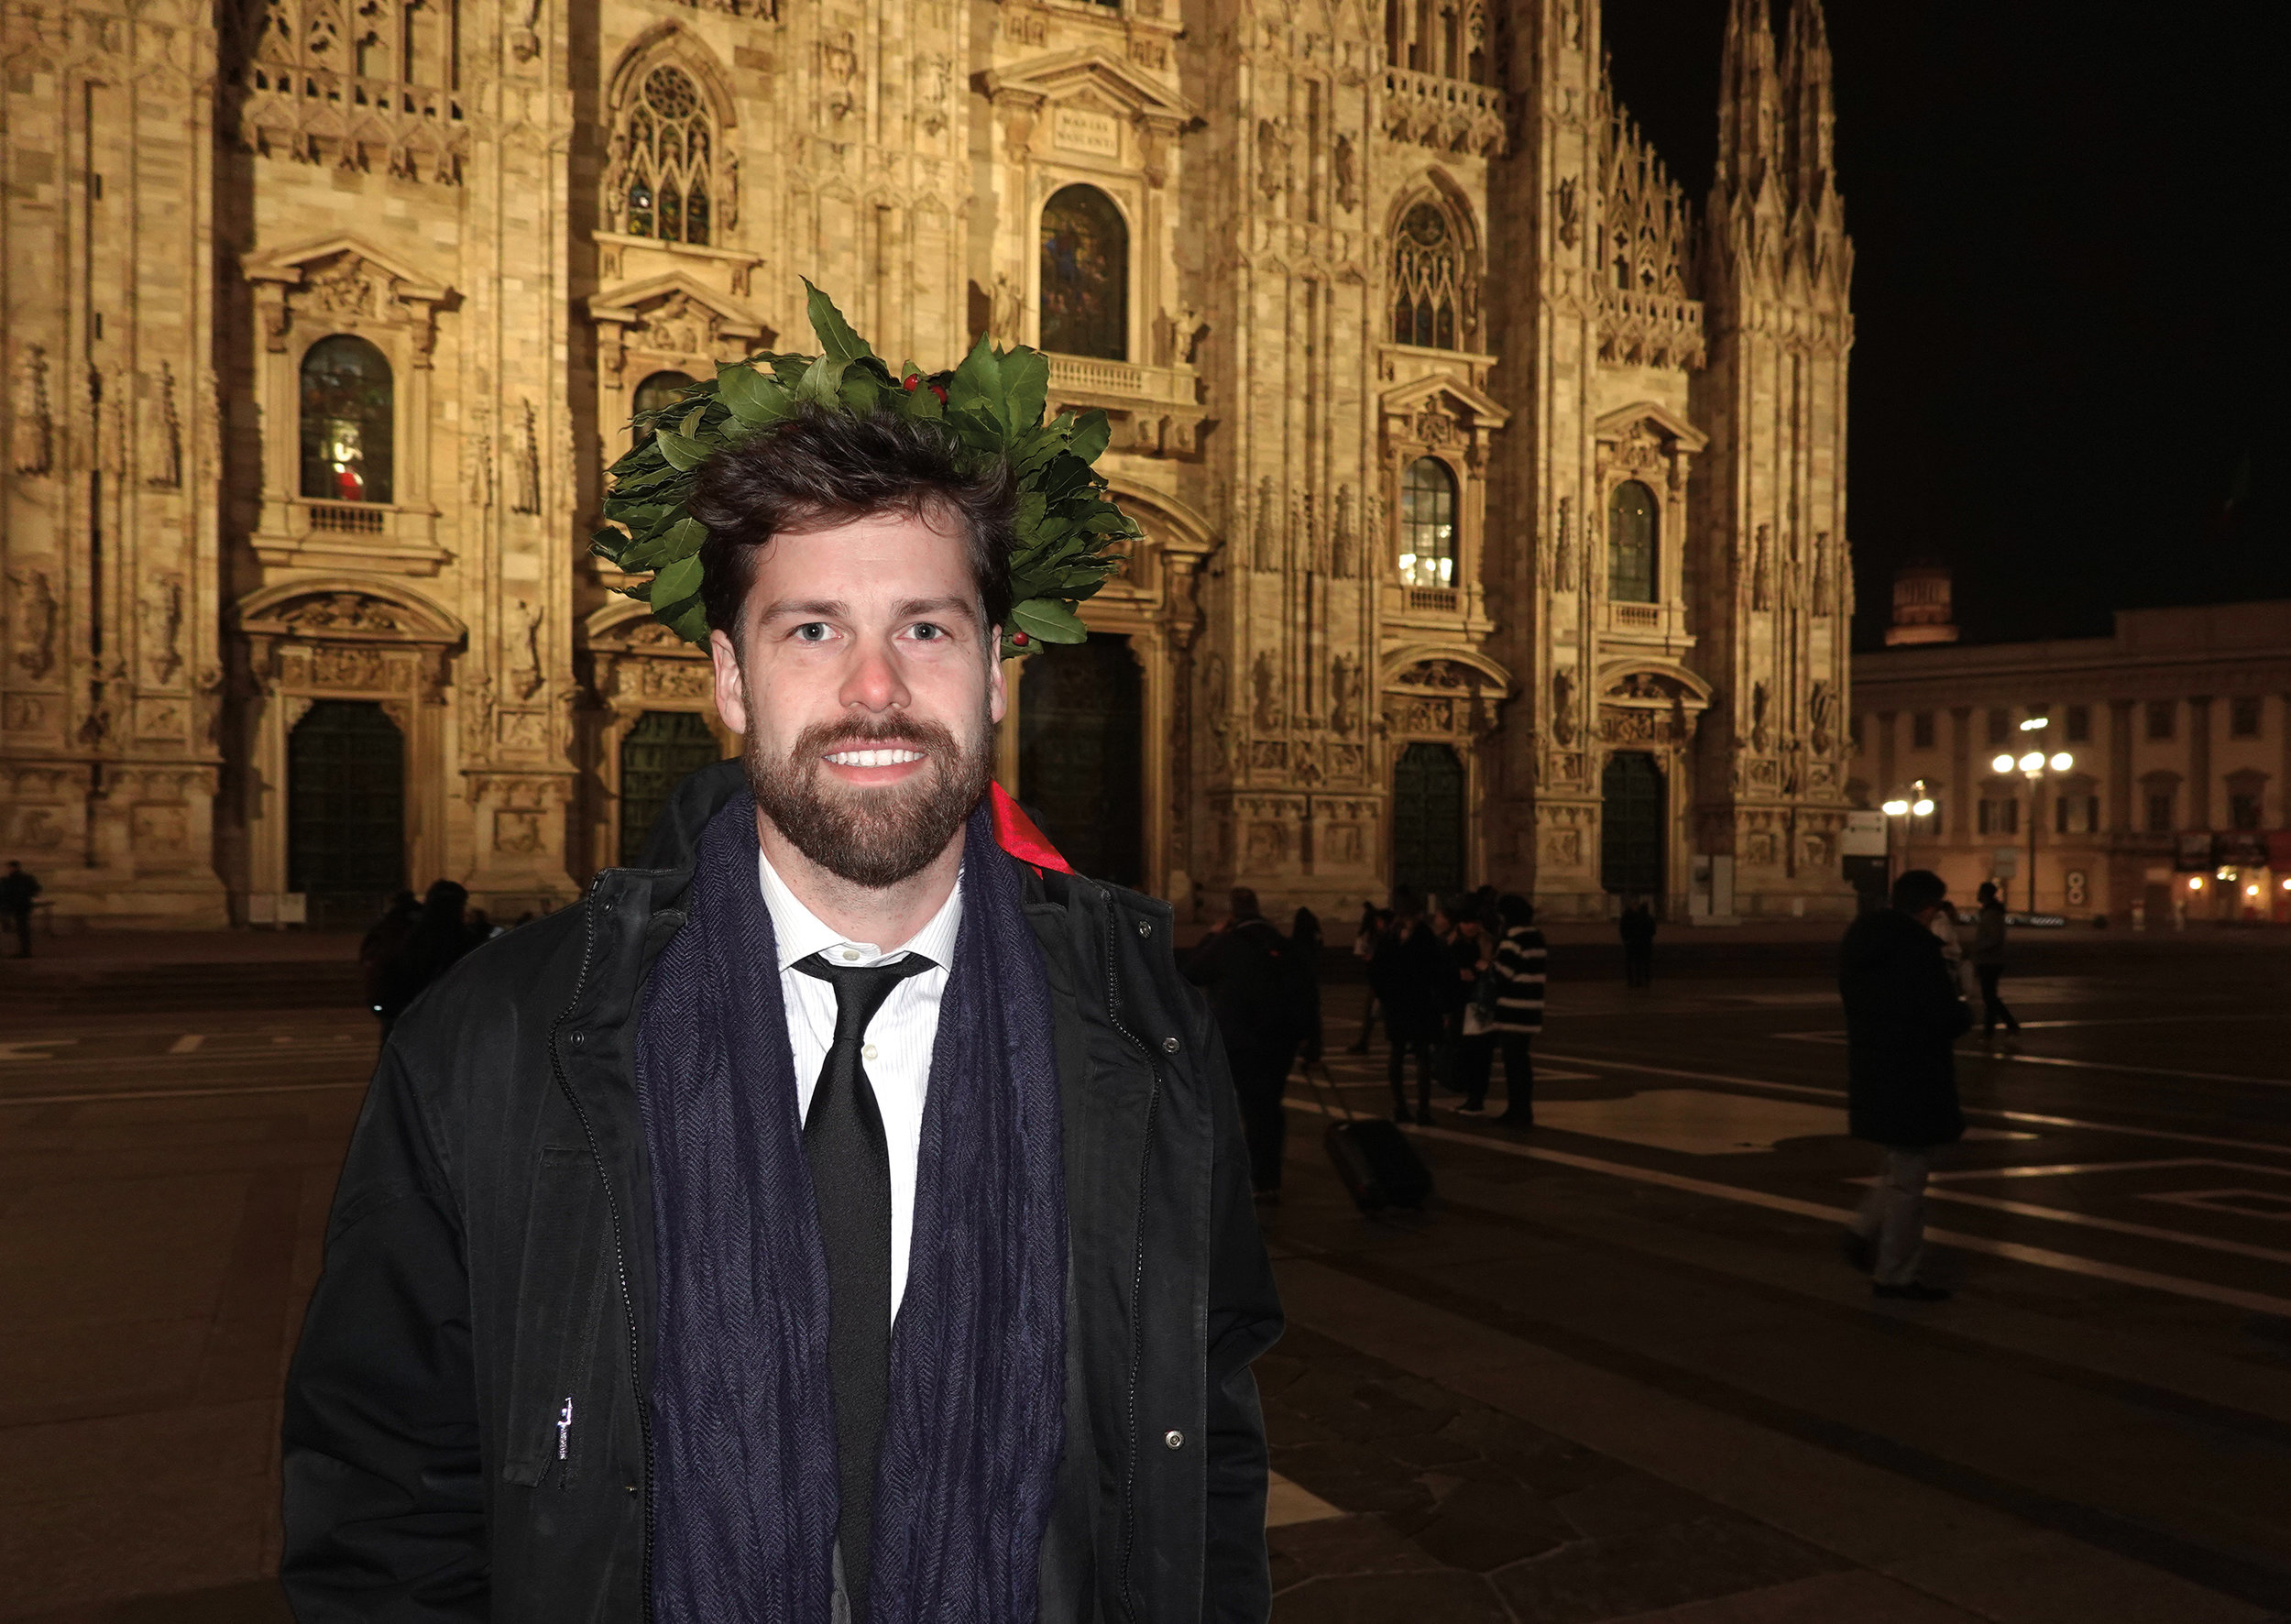 Timothy Liddell '05 wearing the traditional laurel crown worn by all laureates in Italy on their graduation day.